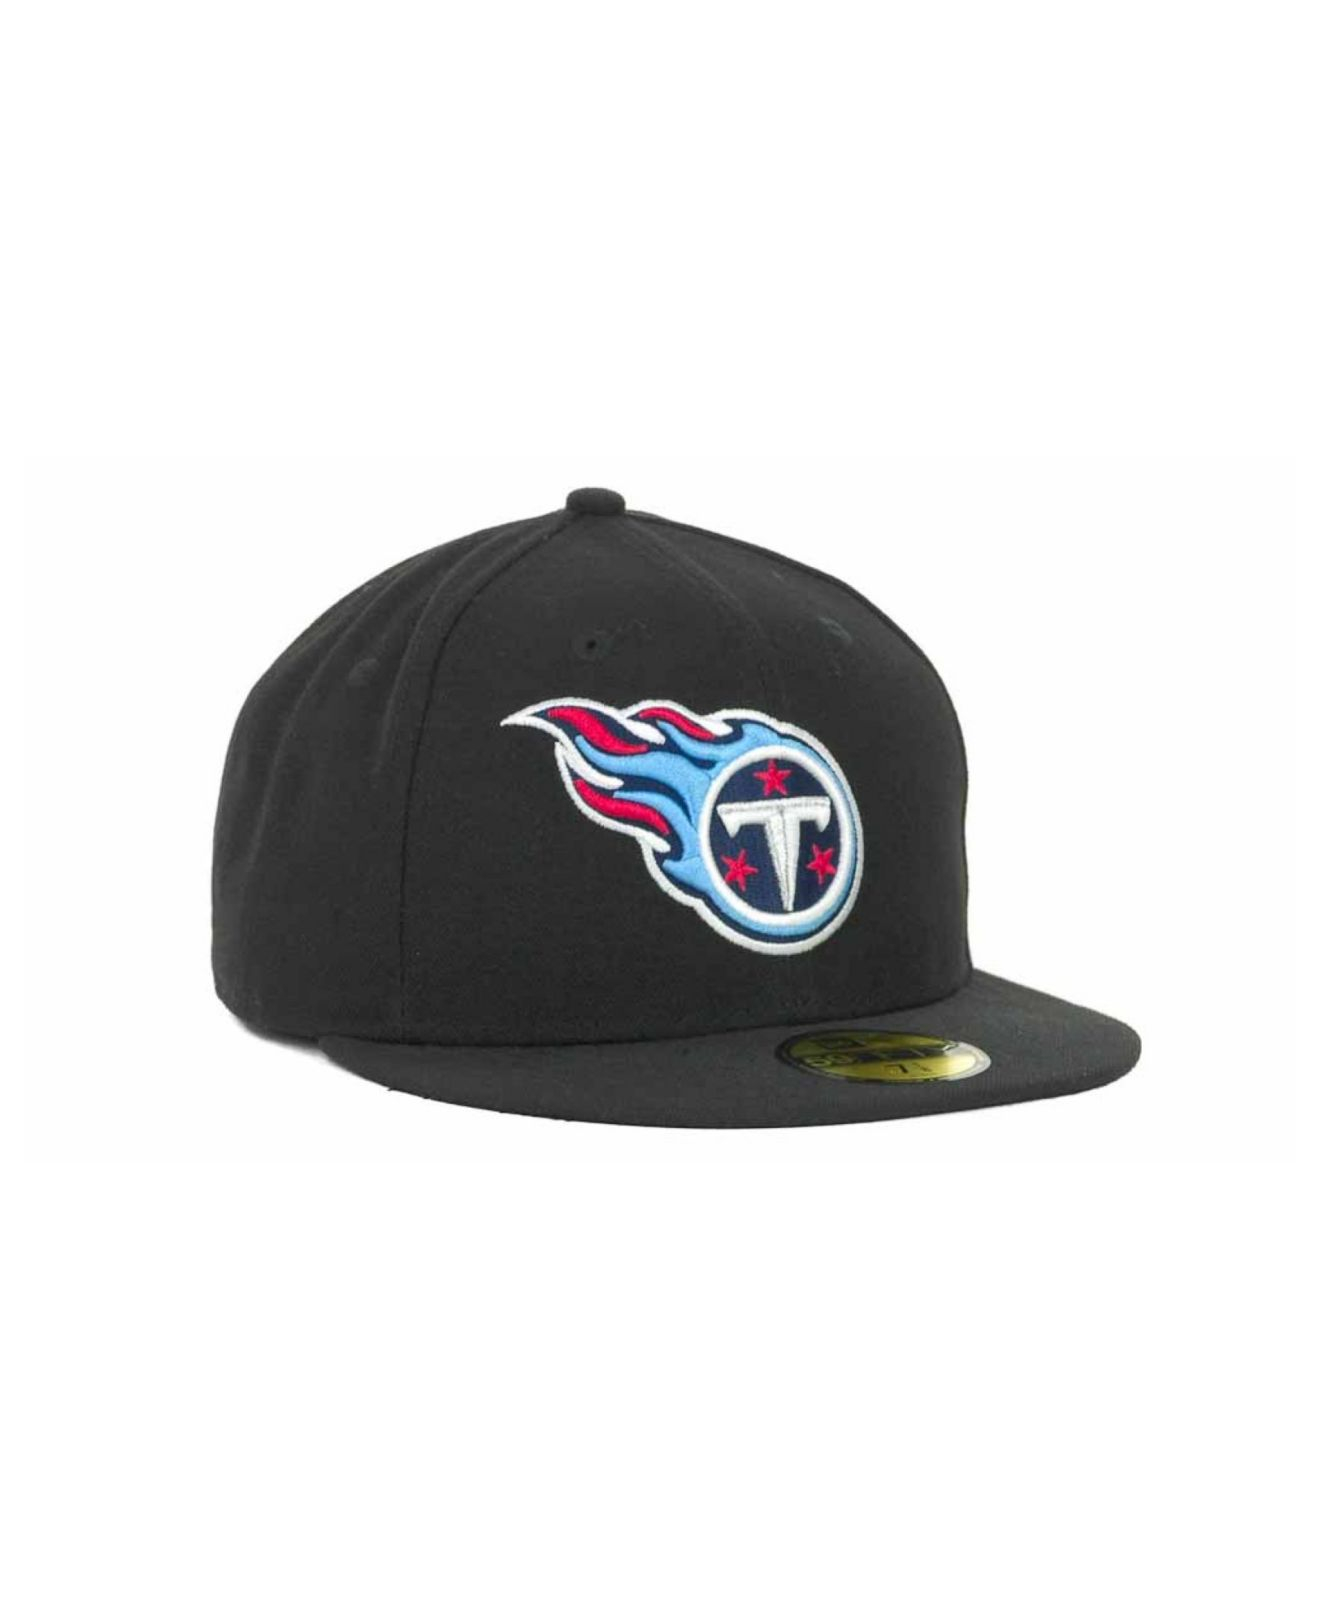 buy online 4beea e4929 ... inexpensive lyst ktz tennessee titans nfl black team 59fifty cap in  black for men c59f5 8f2b8